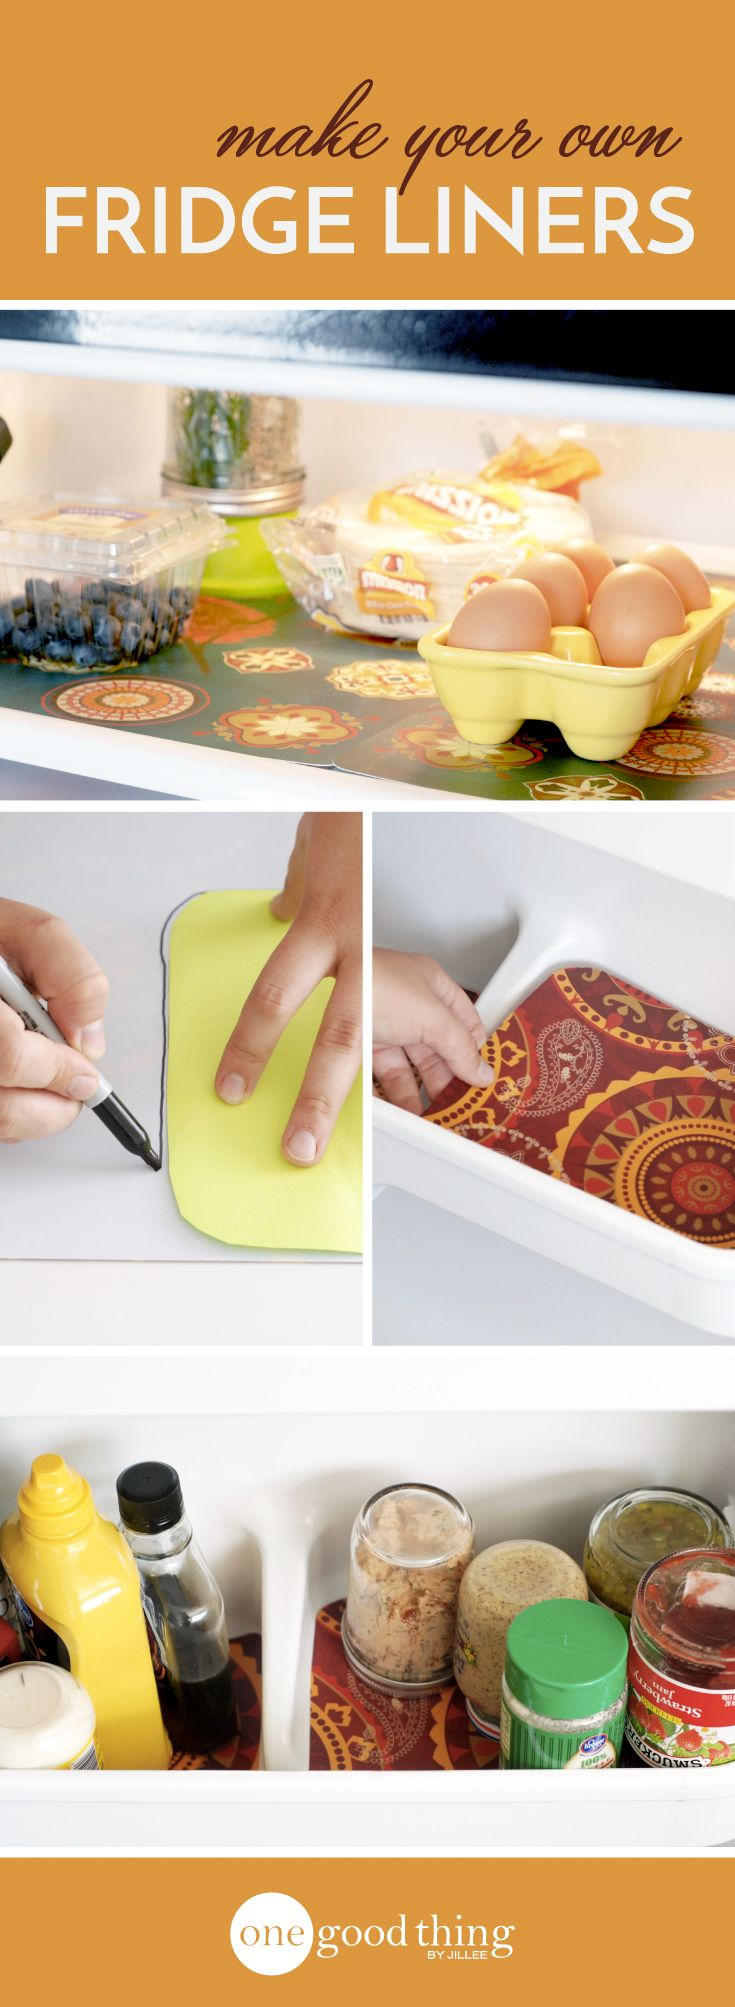 Keep your refrigerator clean and stylish with these DIY Fridge Liners!